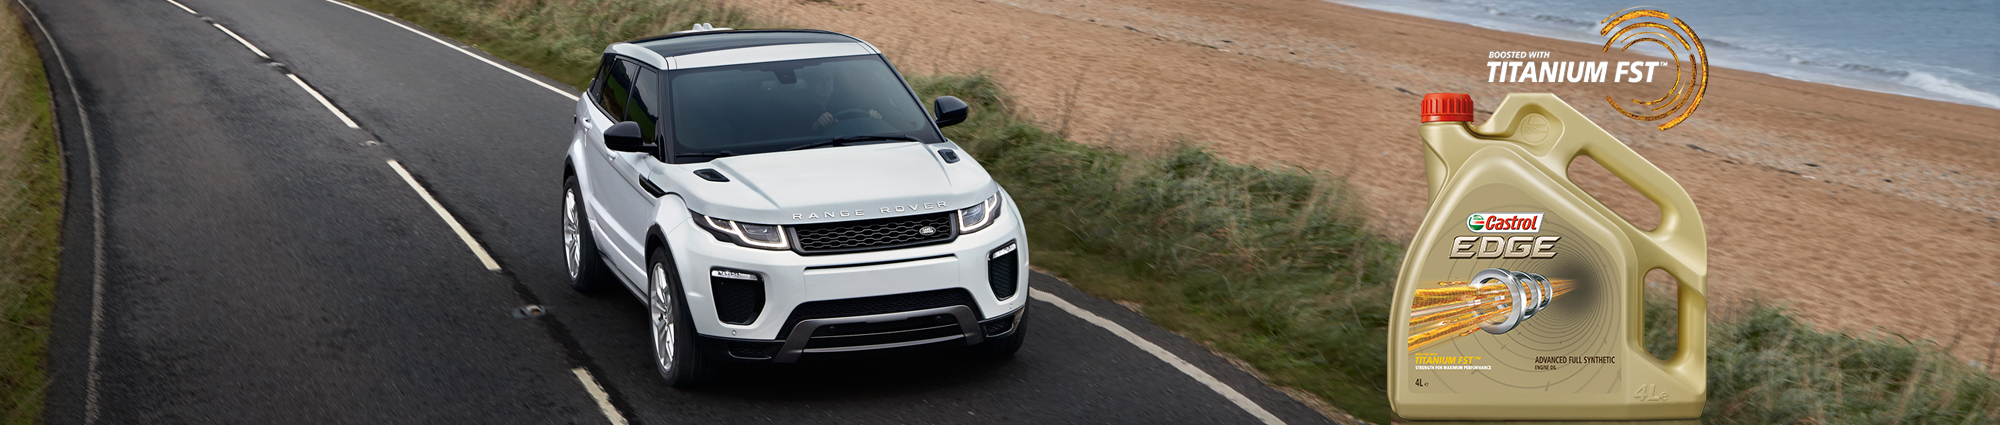 Land Rover a choisi Castrol EDGE